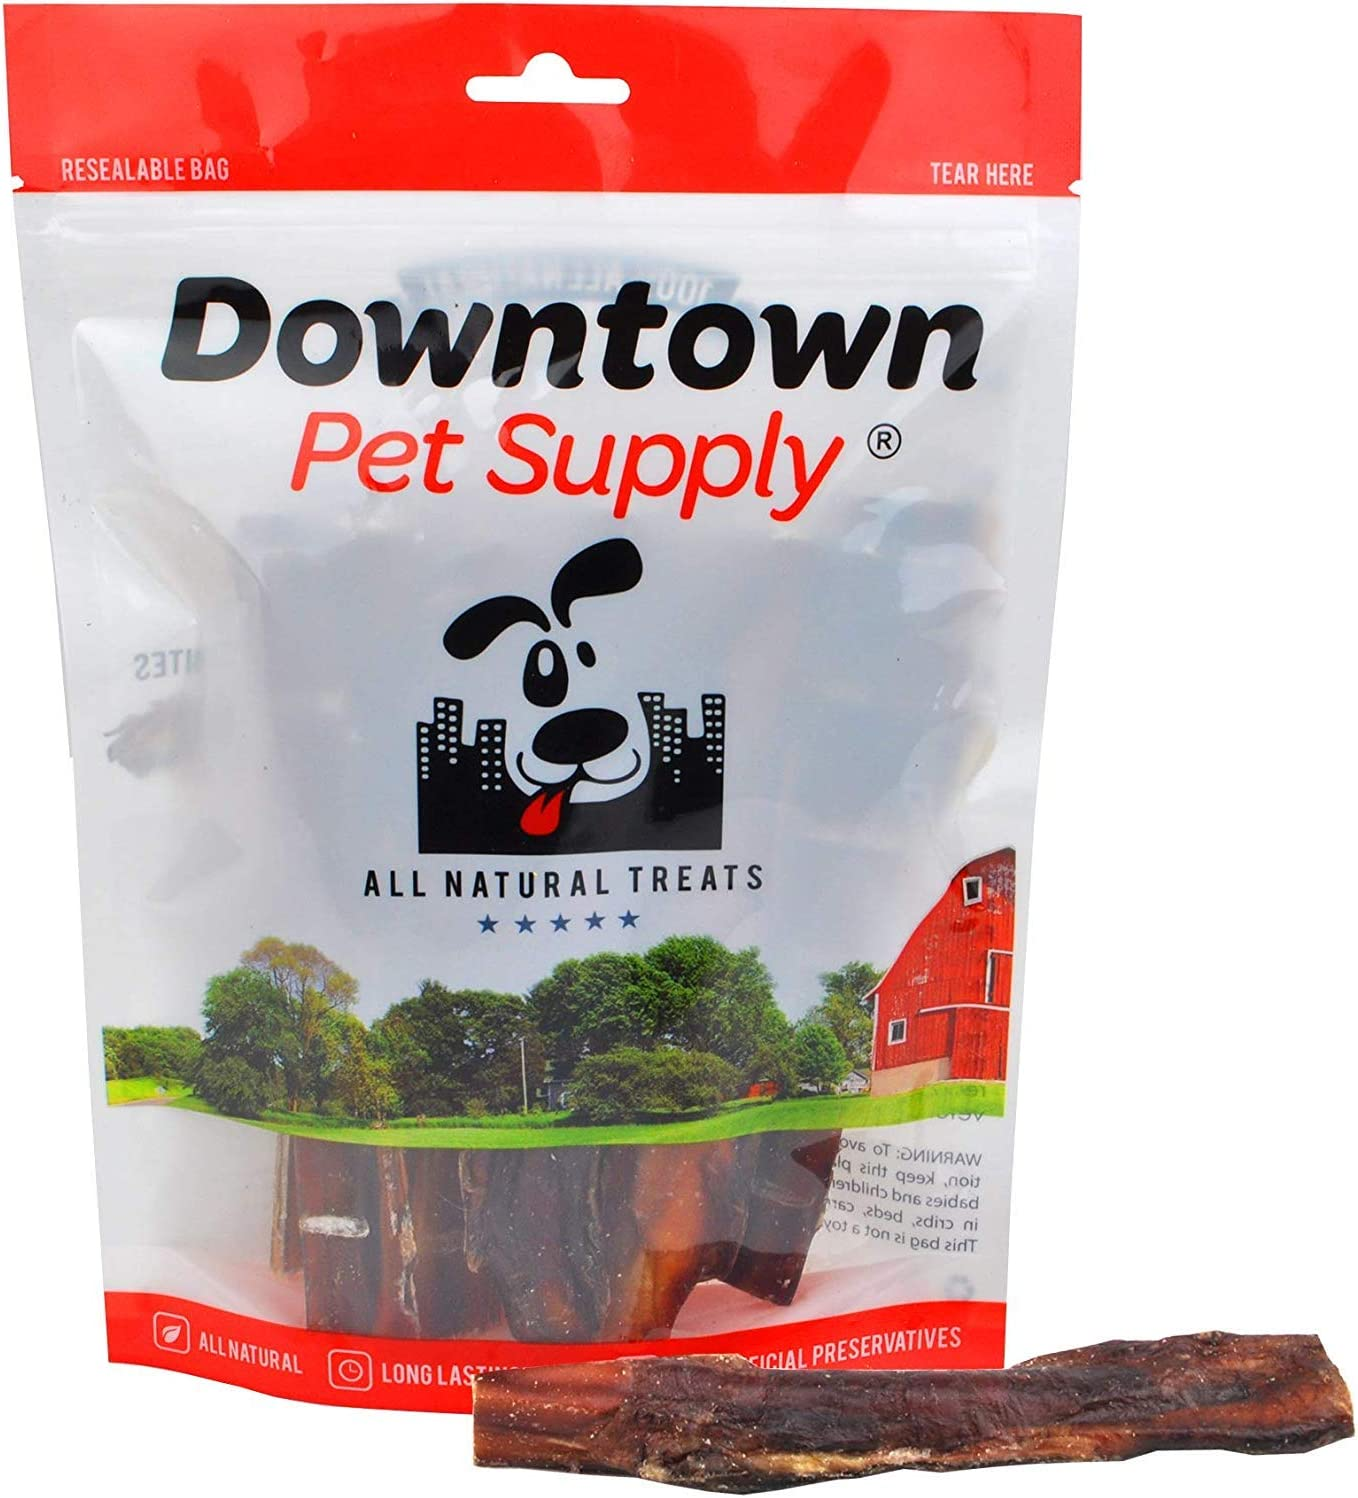 Downtown Pet Supply 6 Inch American Bully Sticks for Dogs Made in USA - Odorless Dog Dental Chew Treats, High in Protein, Alternative to Rawhides (6 Inch, 30 Pack)